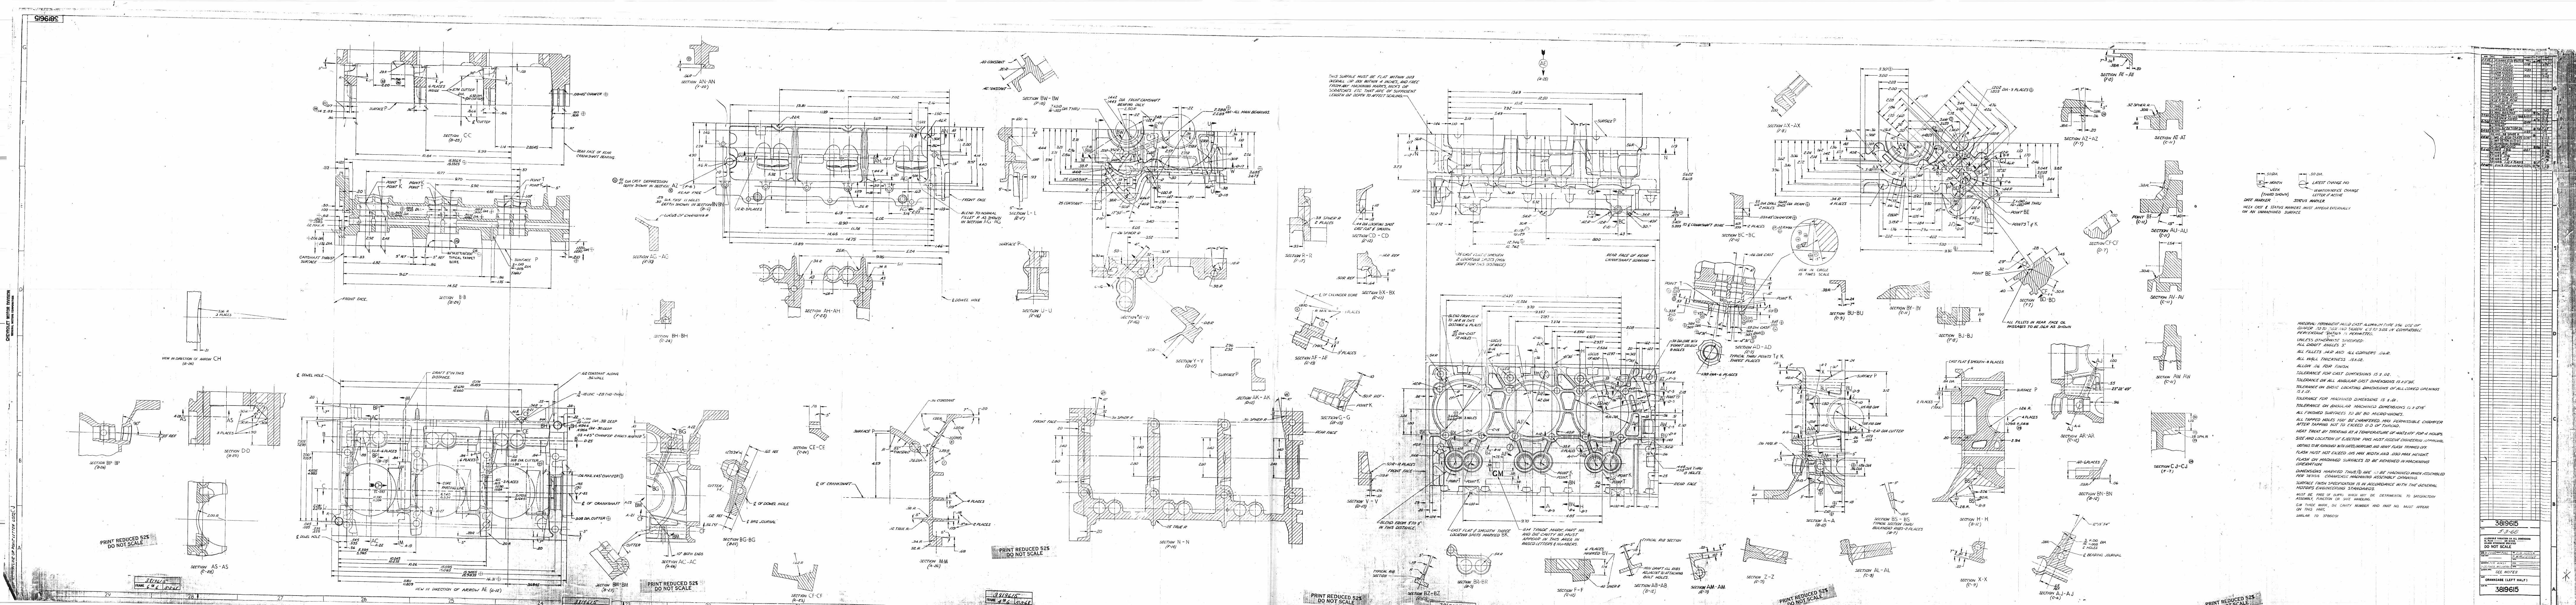 Corvair Blueprint Files In Jpeg Engine Diagram 17 Mb Blueprints For Casual Viewing Download Sm File 3819615dxf 256